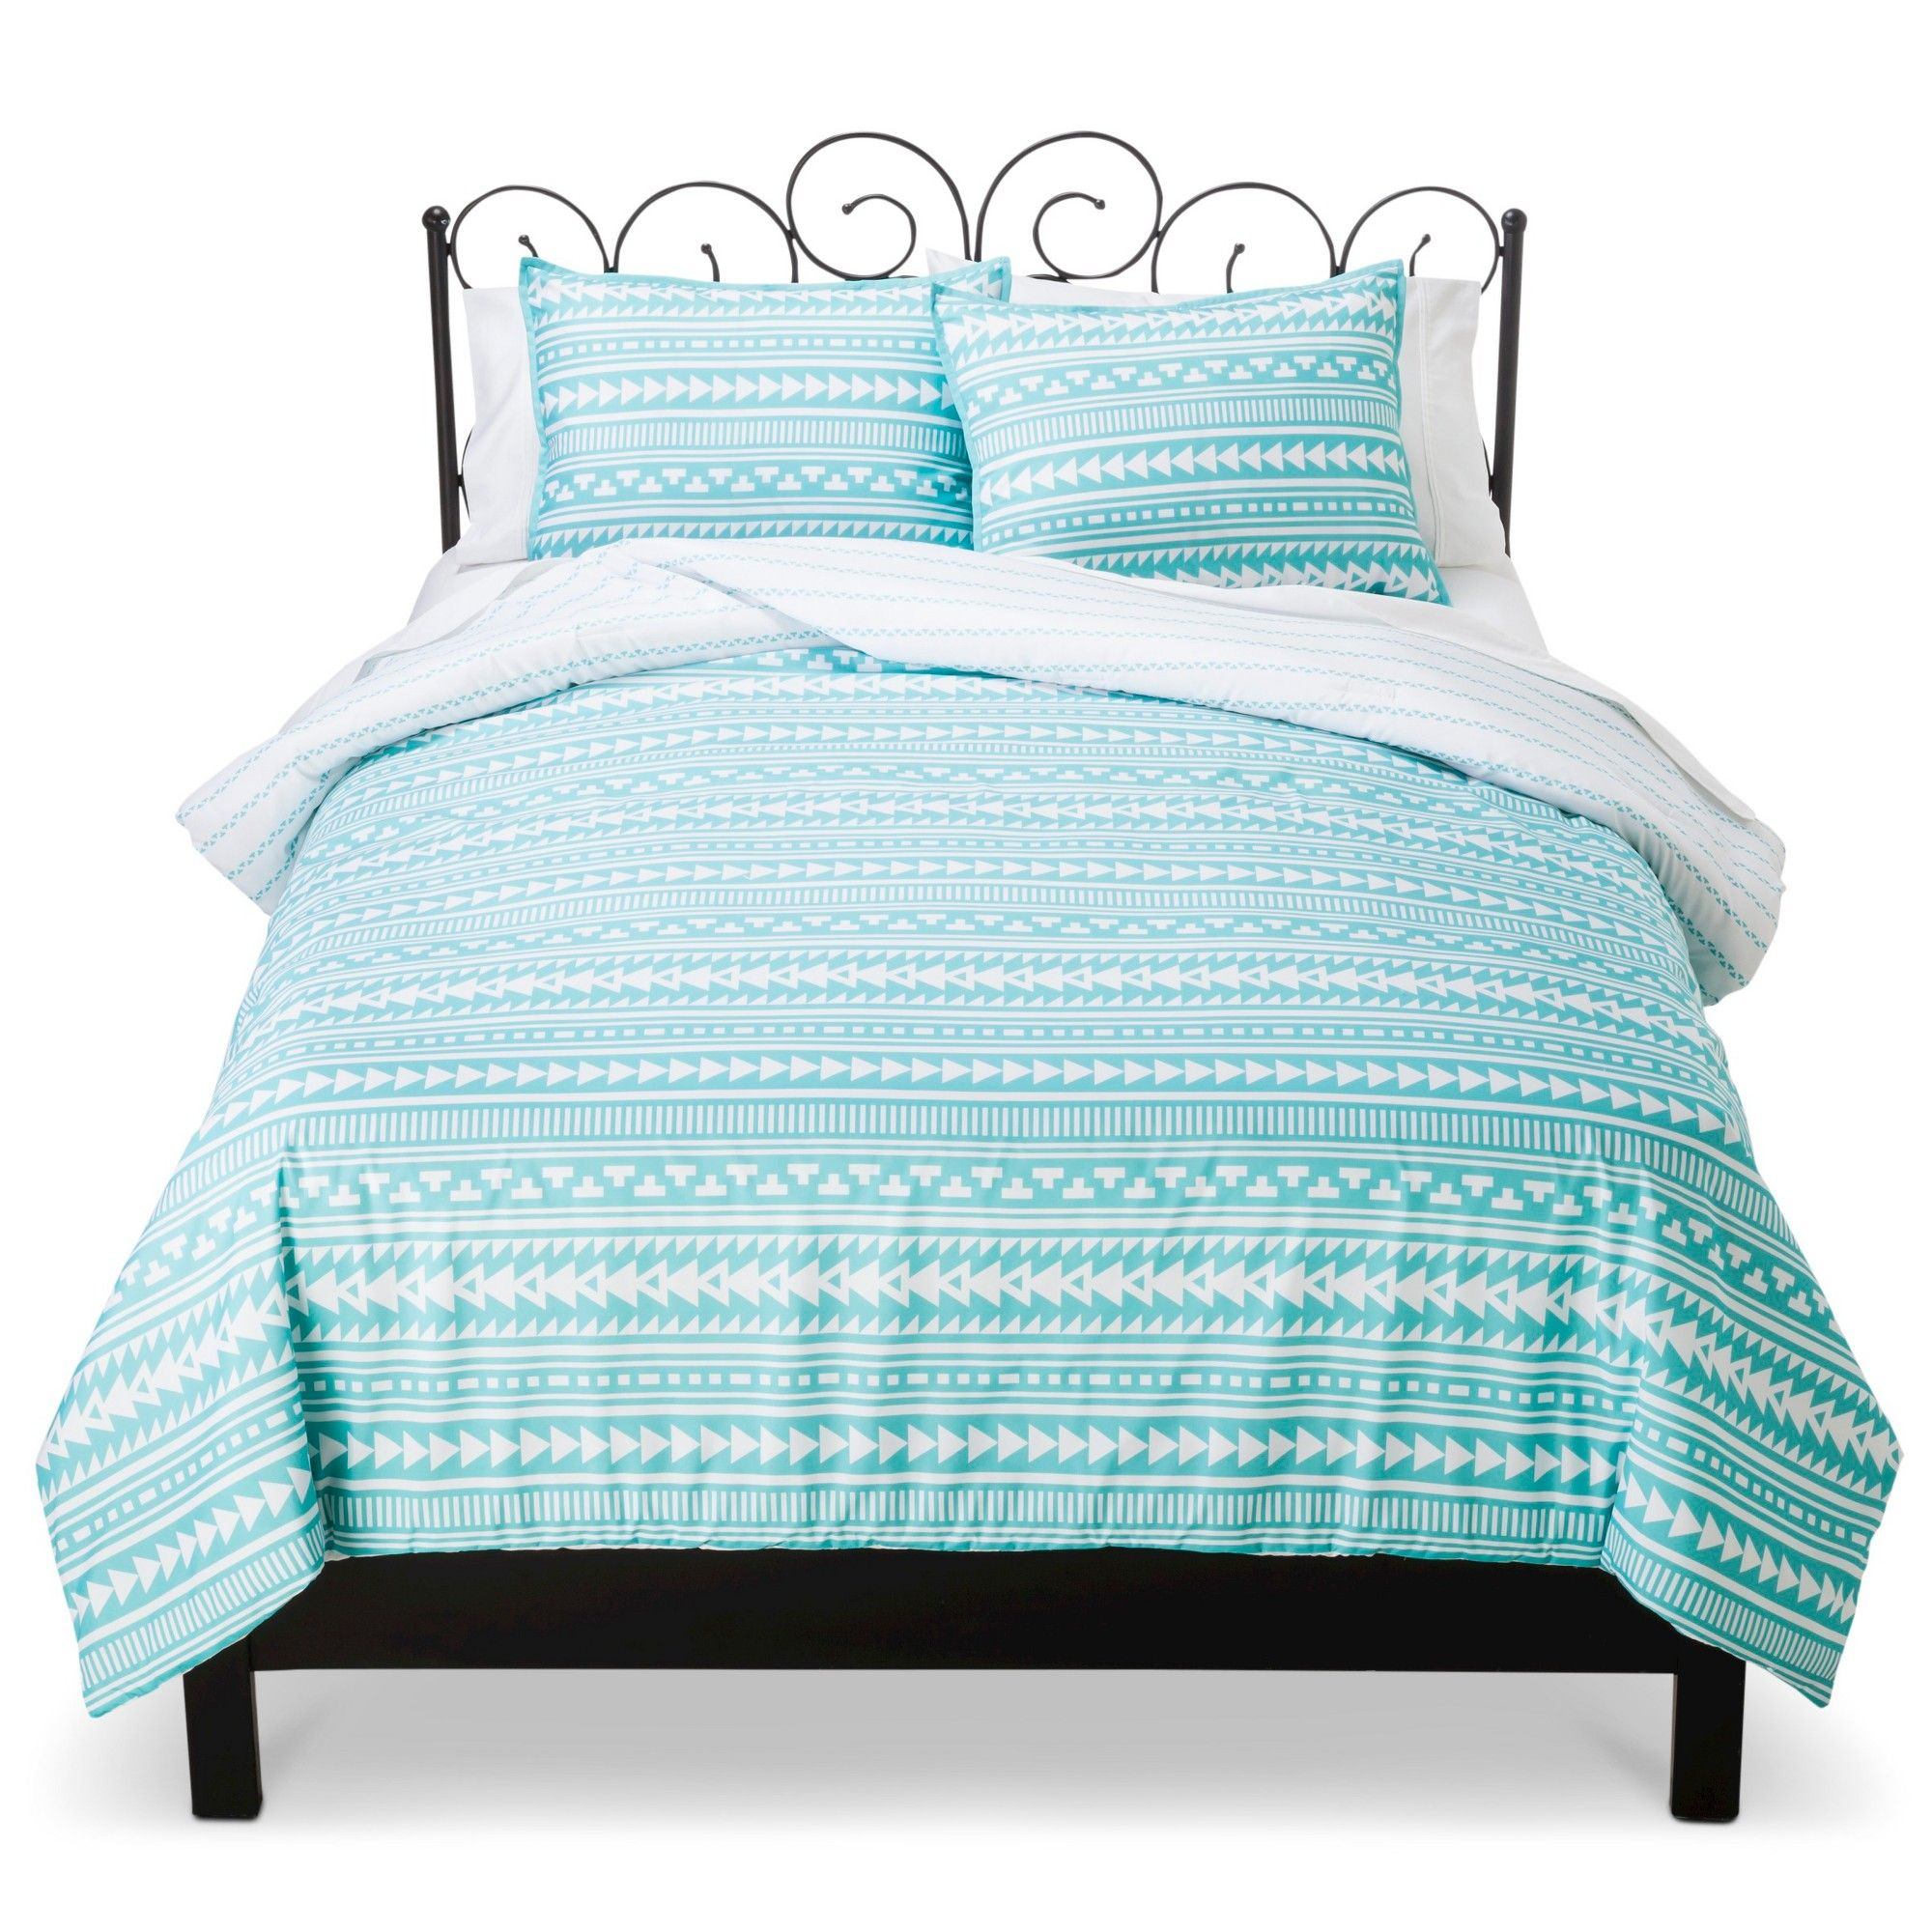 cognac comforterdorm twin sets queen bed set bedding trend bathroom house college xl quilt cover pin comforter and for